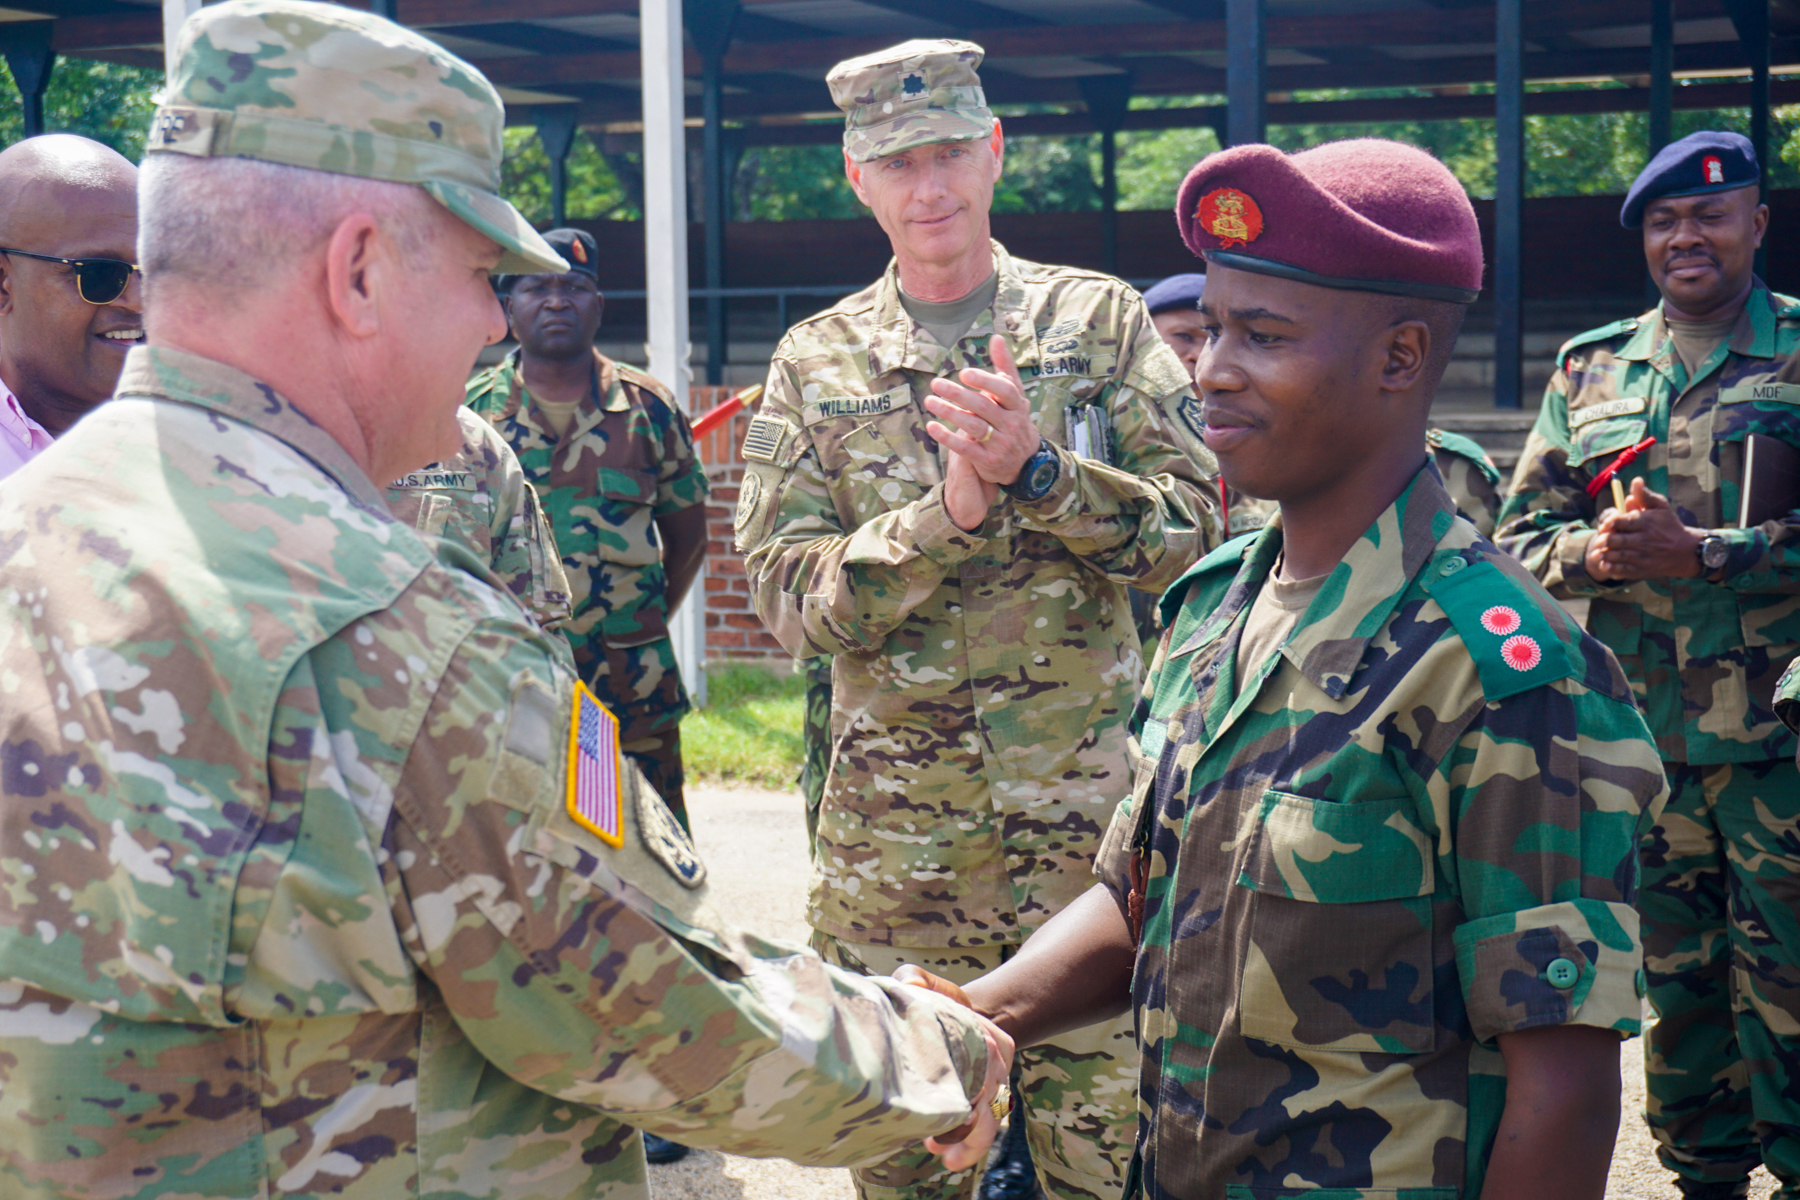 U.S. Army Brig. Gen. Kenneth Moore, U.S. Army Africa deputy commander, thanks a Malawi airborne lieutenant after he briefed the gathered Malawi and U.S. military planners near the Malawi Armed Forces College, Salima, Malawi, during the final planning event for the Africa Land Forces Summit 2017, March 28, 2017. ALFS is an annual, weeklong seminar bringing together land force chiefs from across Africa for candid dialog to discuss and develop cooperative solutions to regional and trans-regional challenges and threats.